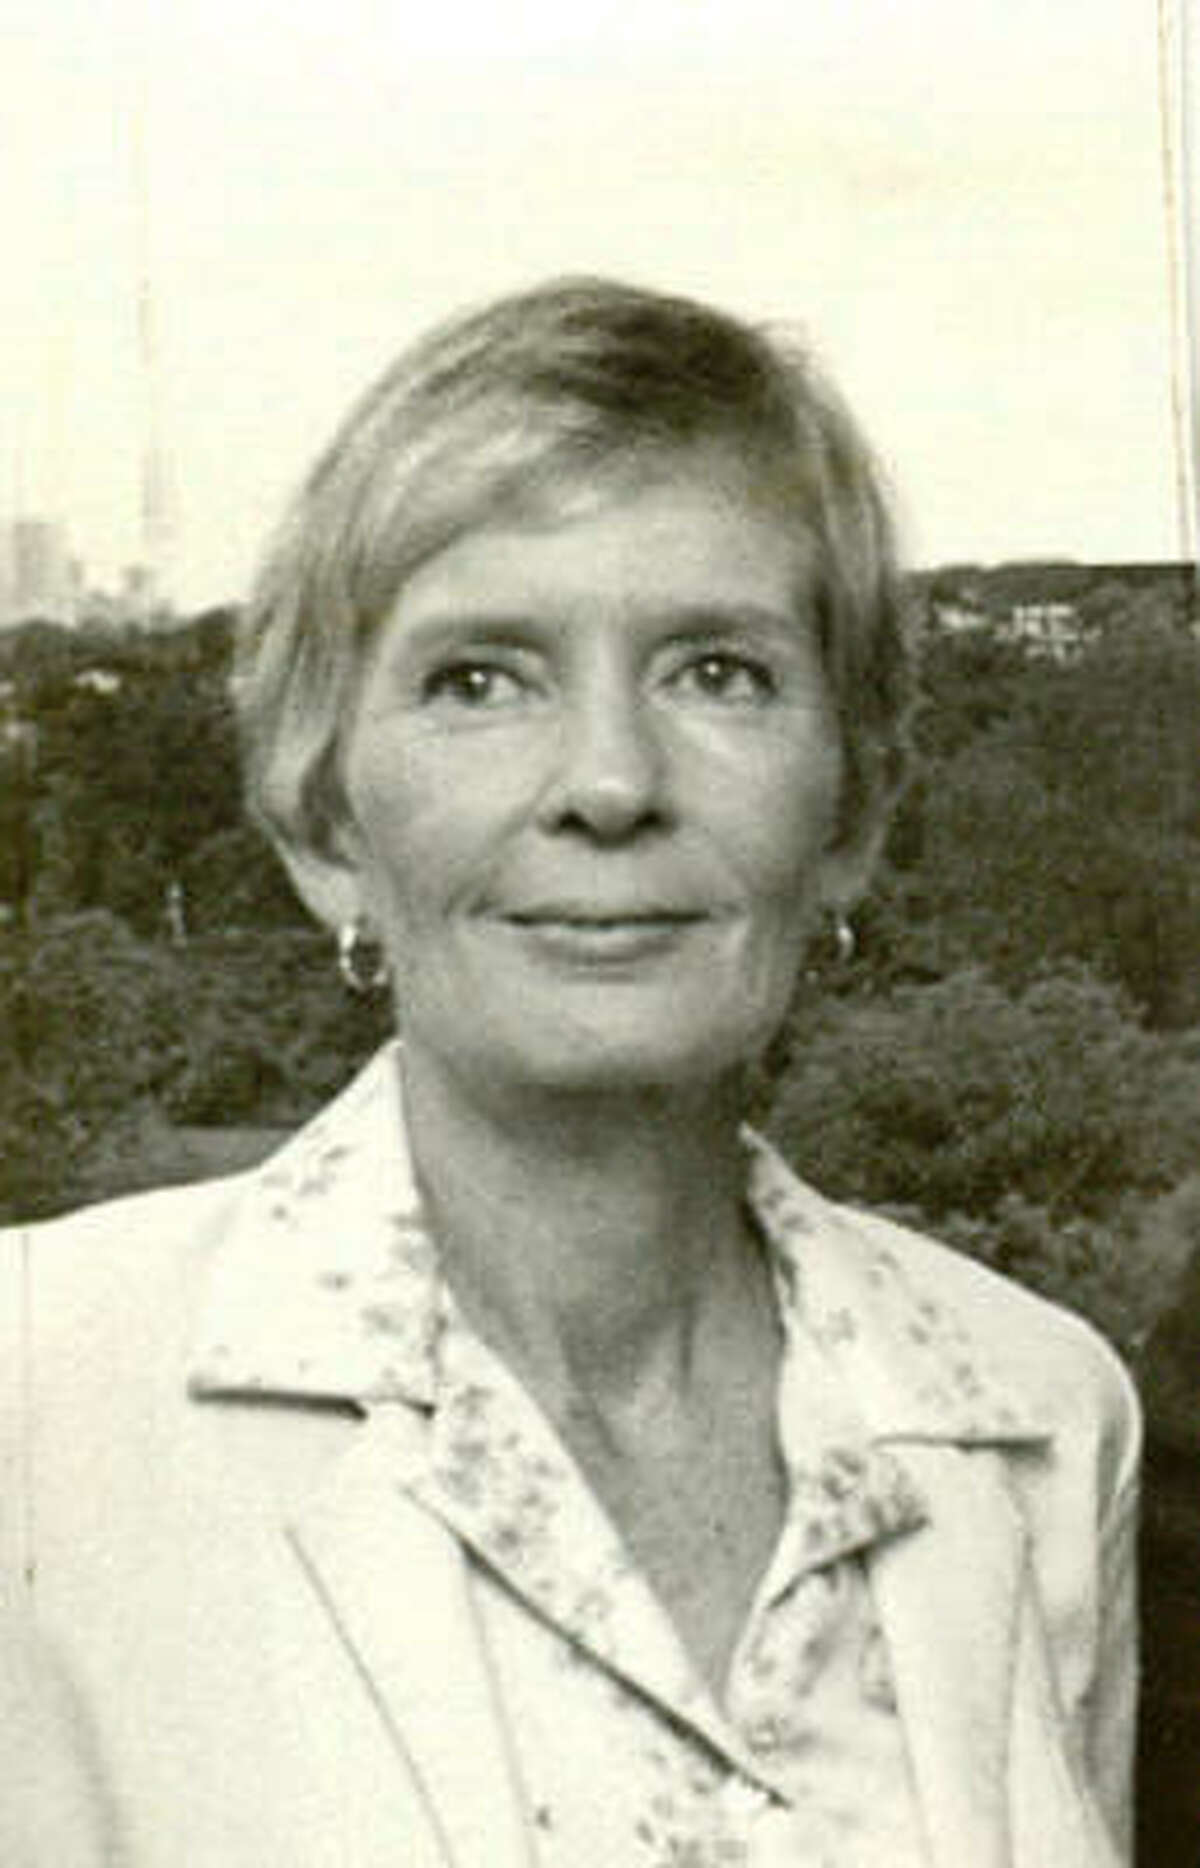 Juanita McGinty was active in the Houston Council of Human Relations and the American Civil Liberties Union.